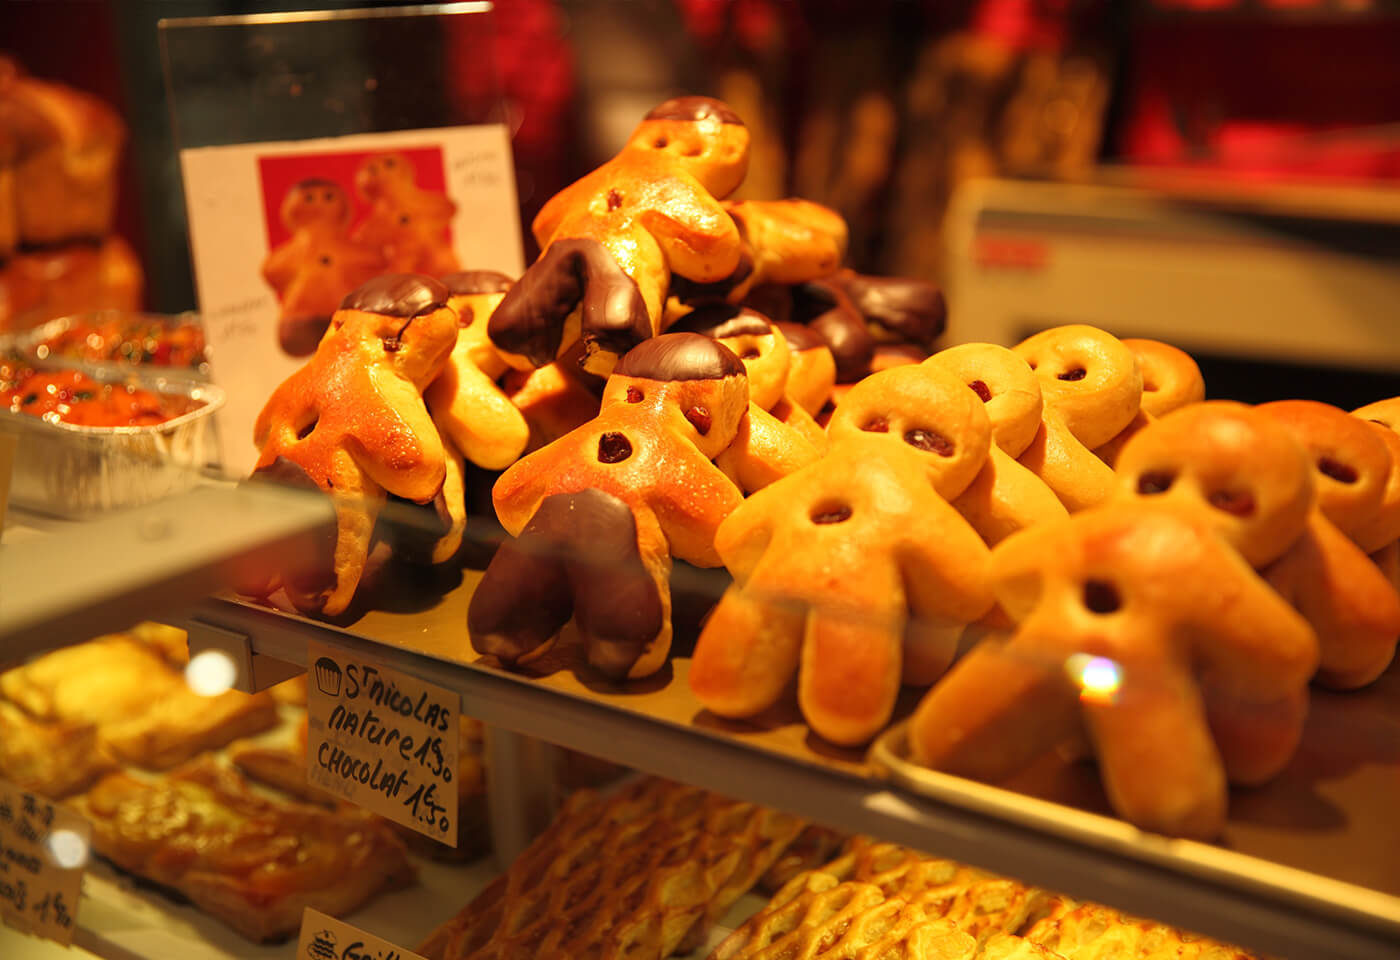 Gingerbread men in a bakery